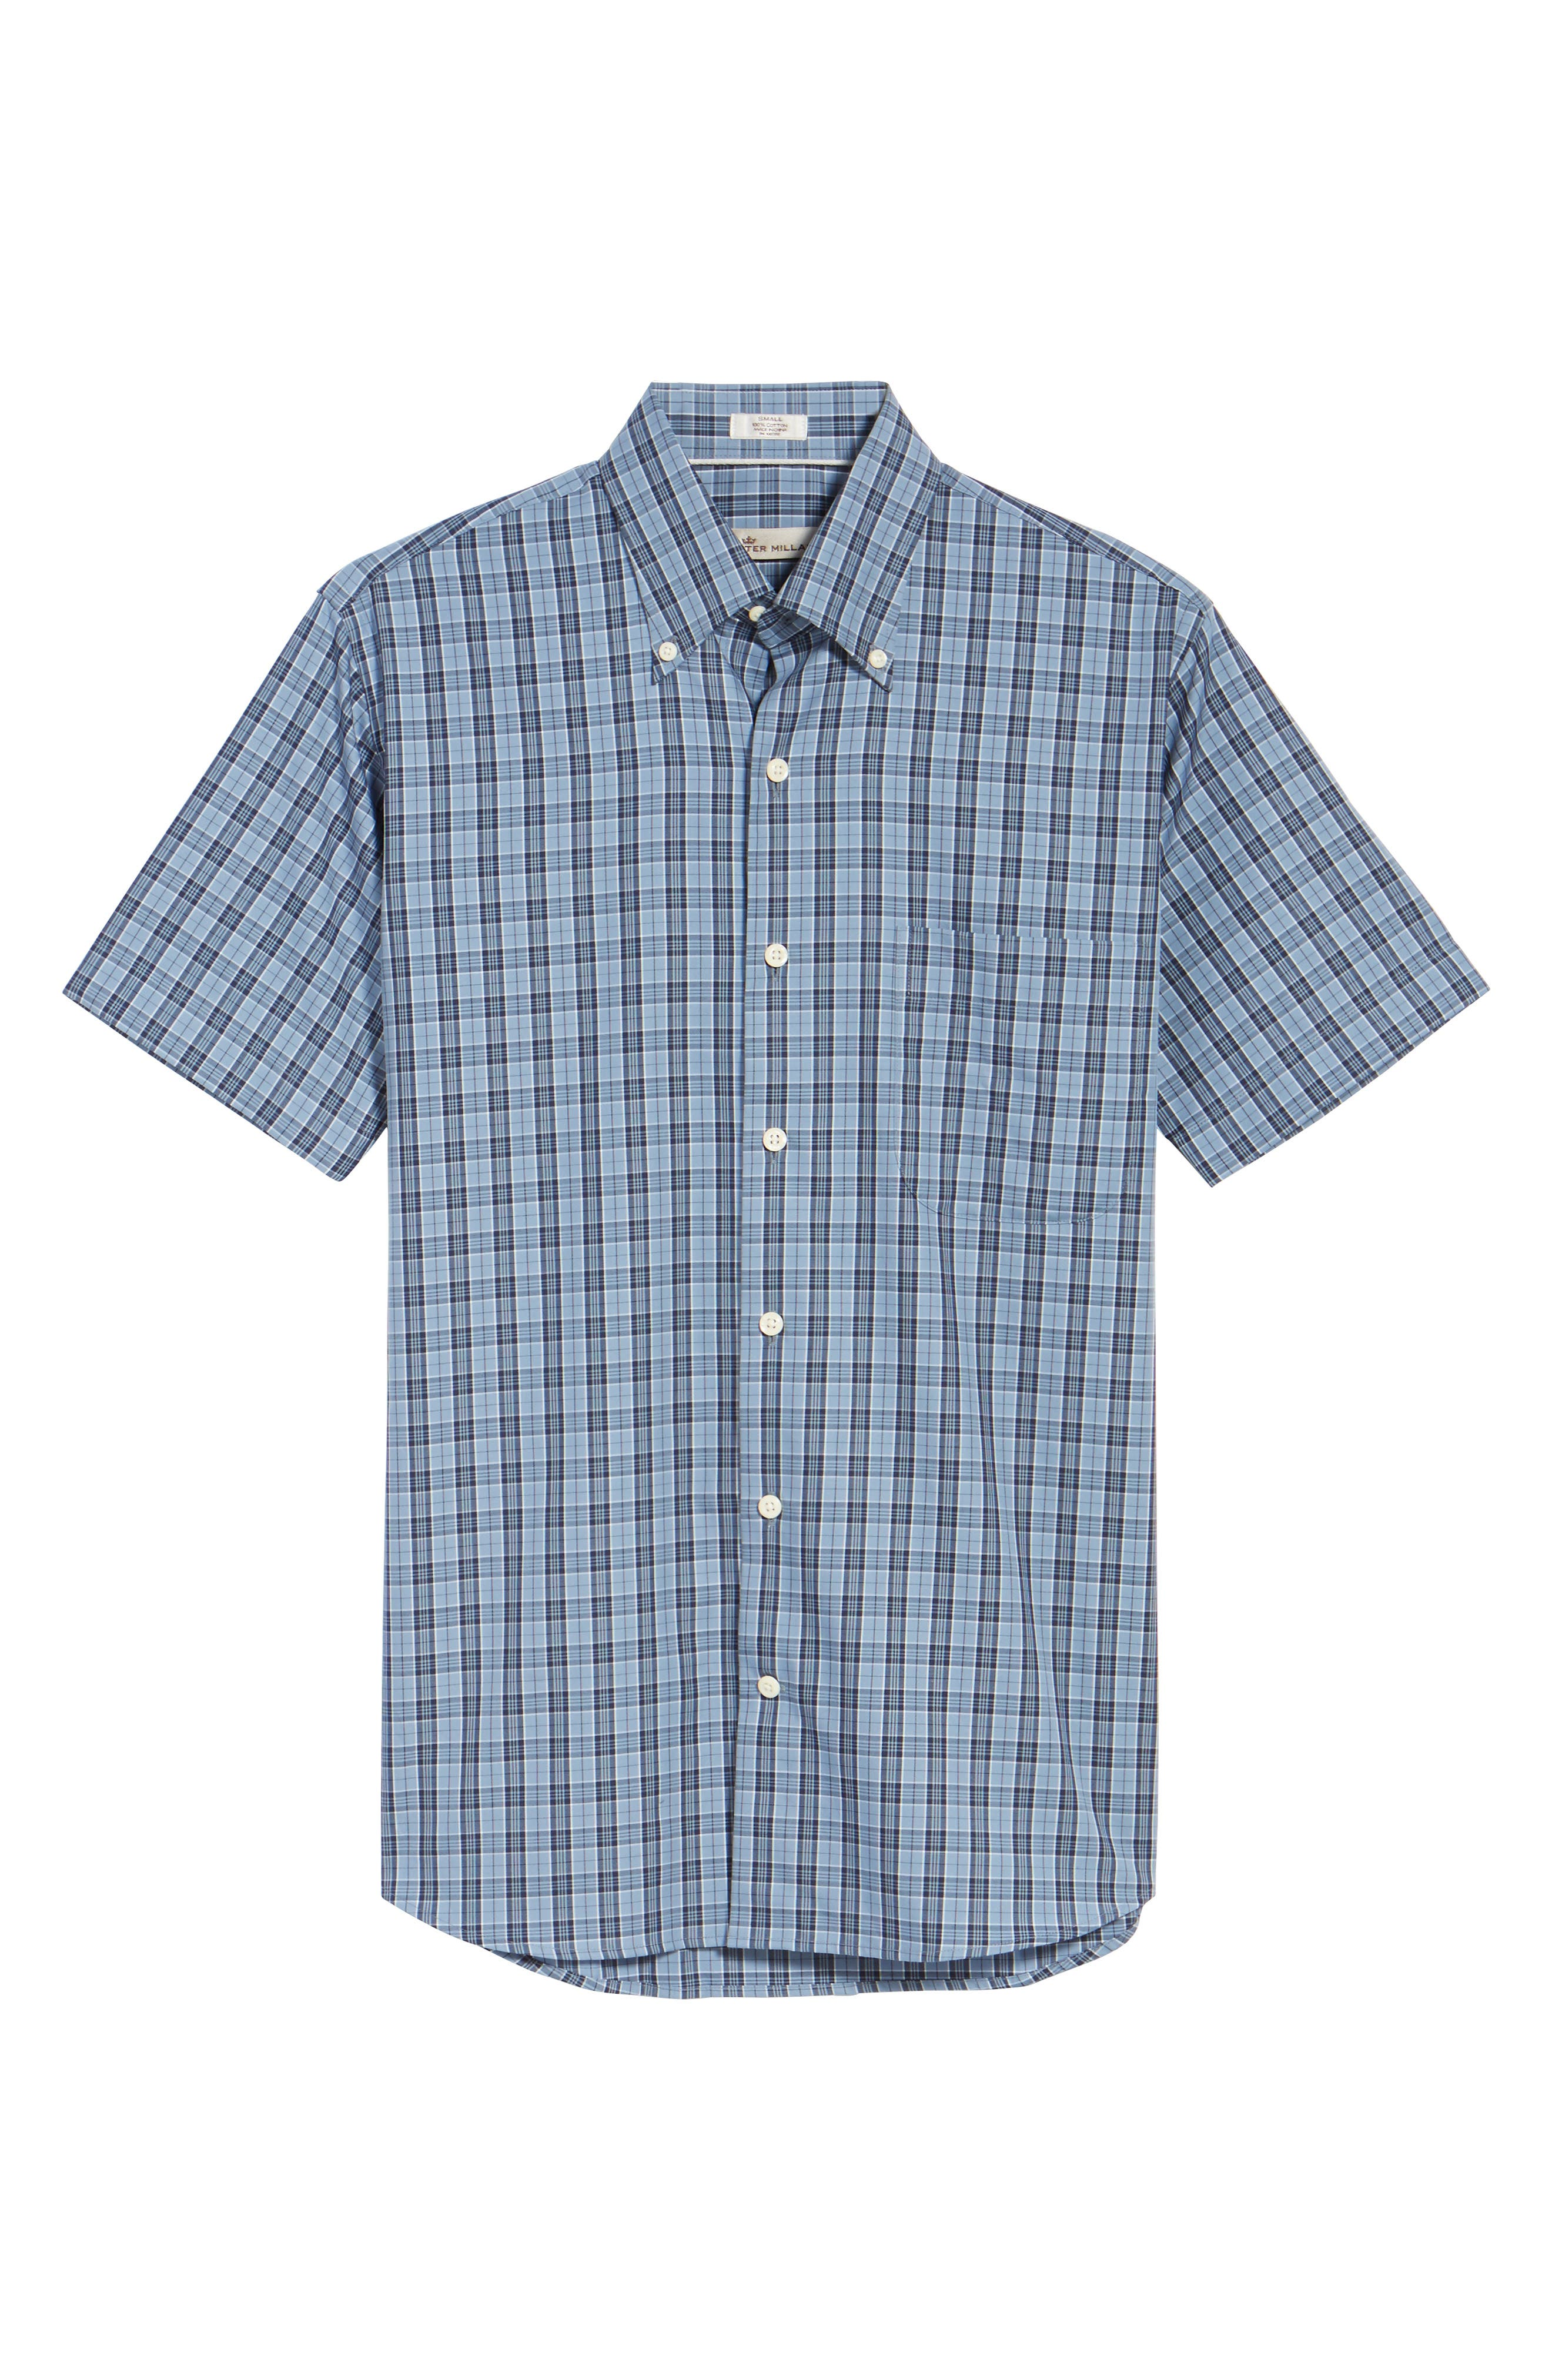 Alternate Image 6  - Peter Millar Regular Fit Short Sleeve Stormy Plaid Sport Shirt